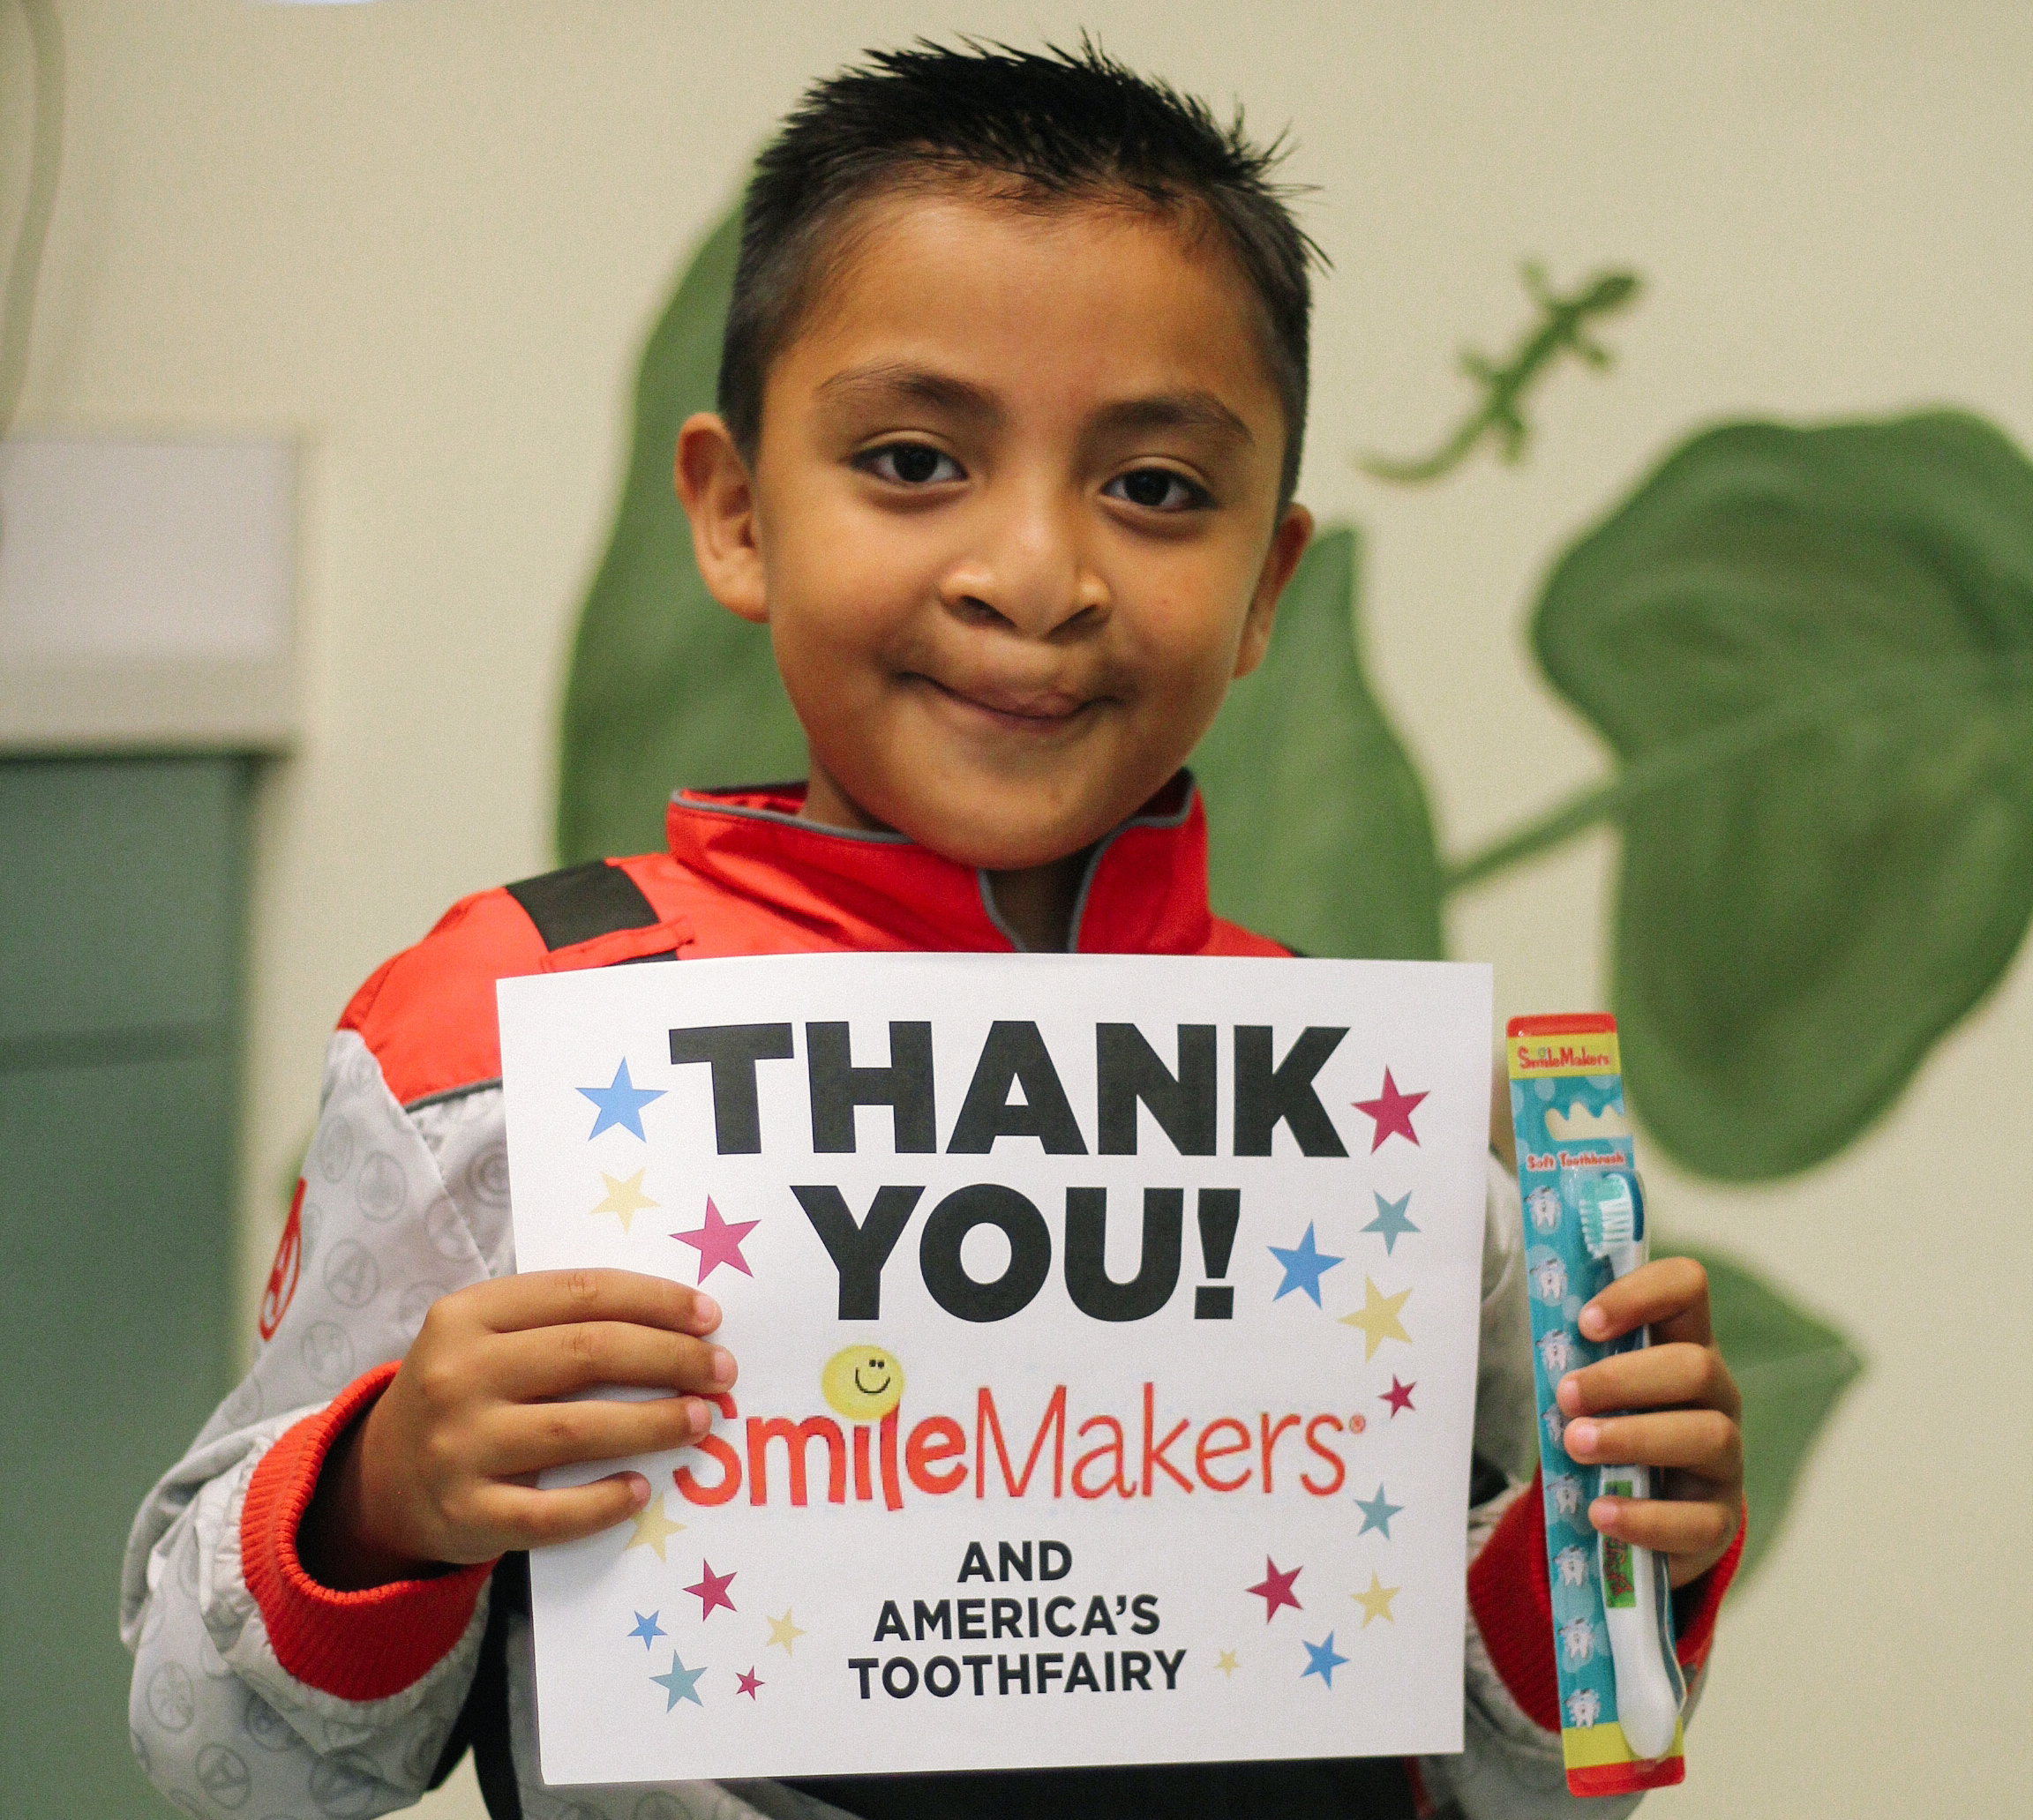 Boy with toothbrush holds up thank you sign for Smile Makers